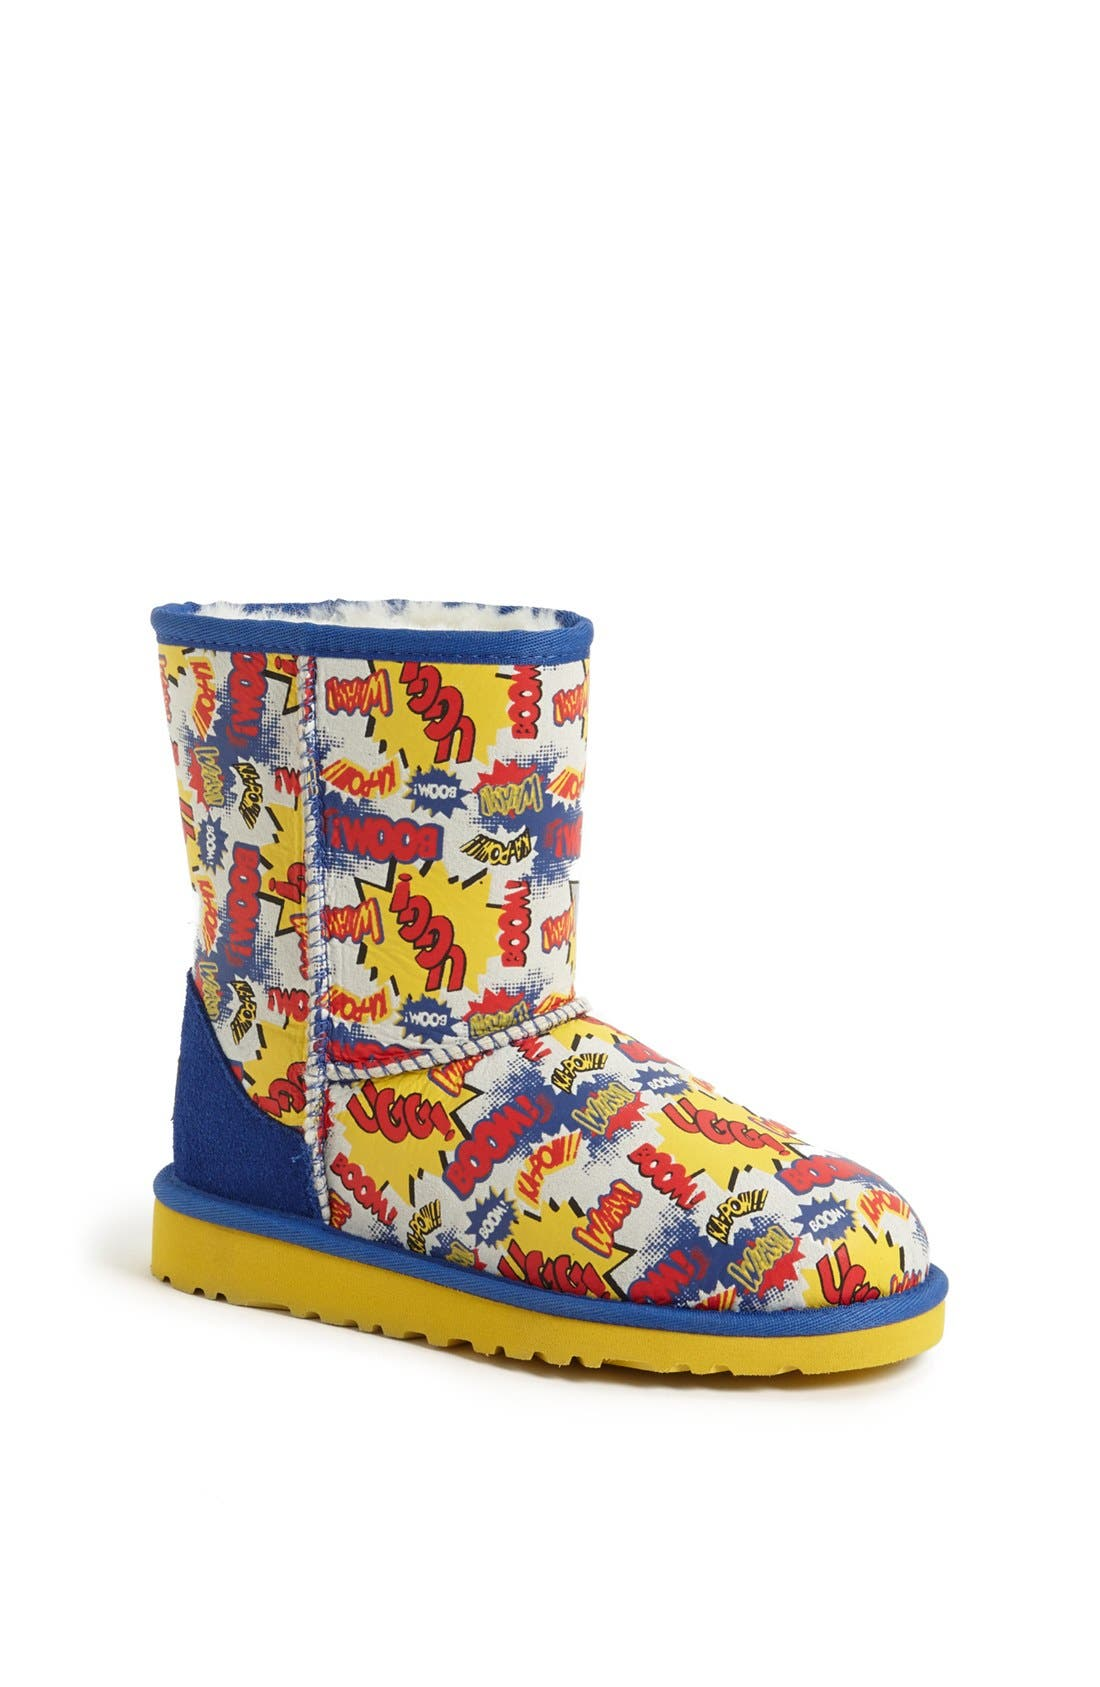 Main Image - UGG® Australia 'Classic Short - Comic' Print Boot (Walker, Toddler, Little Kid & Big Kid)